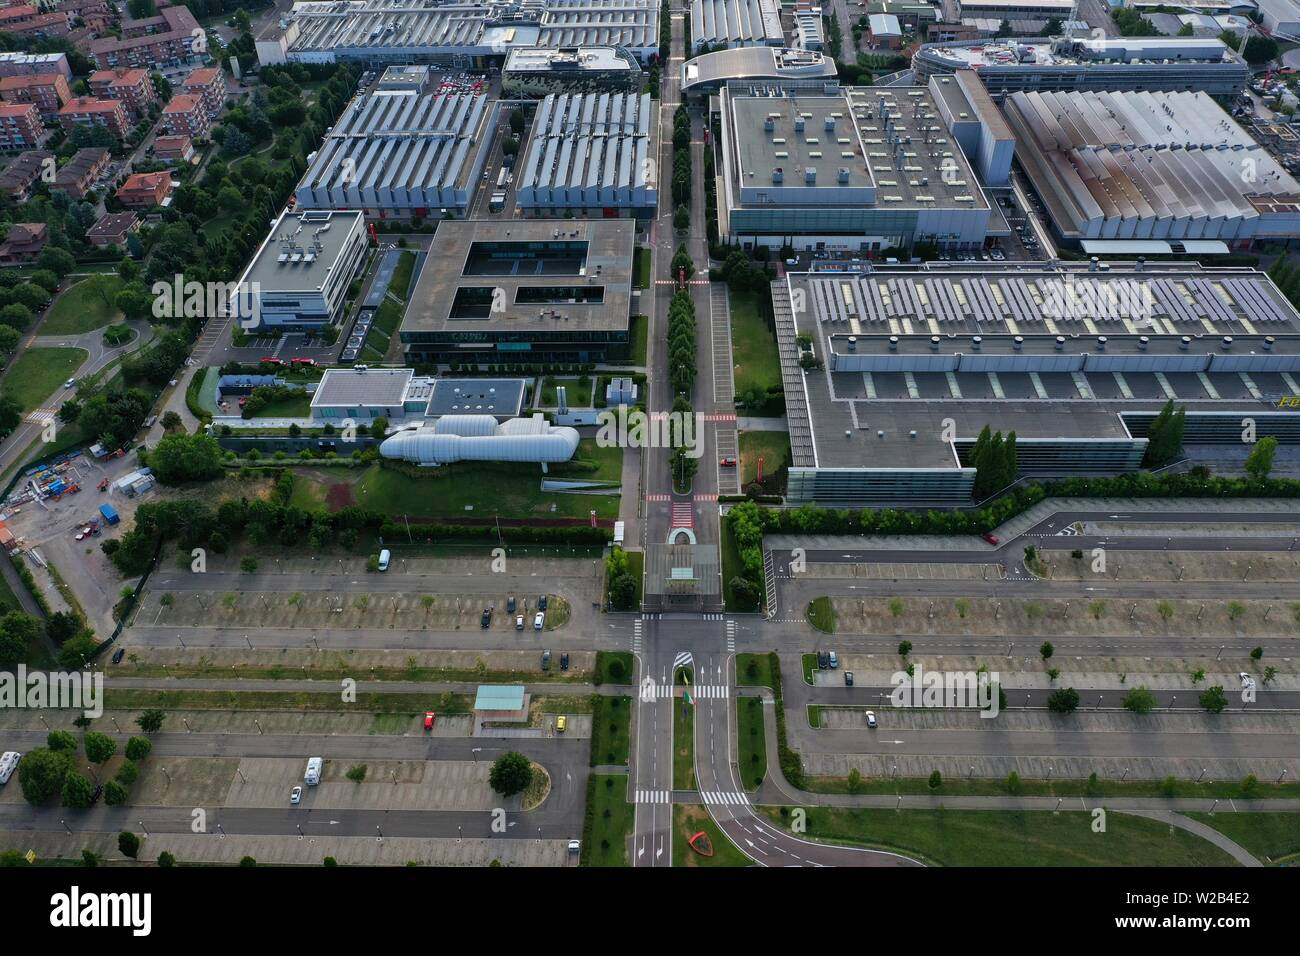 Ferrari Factory Exterior High Resolution Stock Photography And Images Alamy